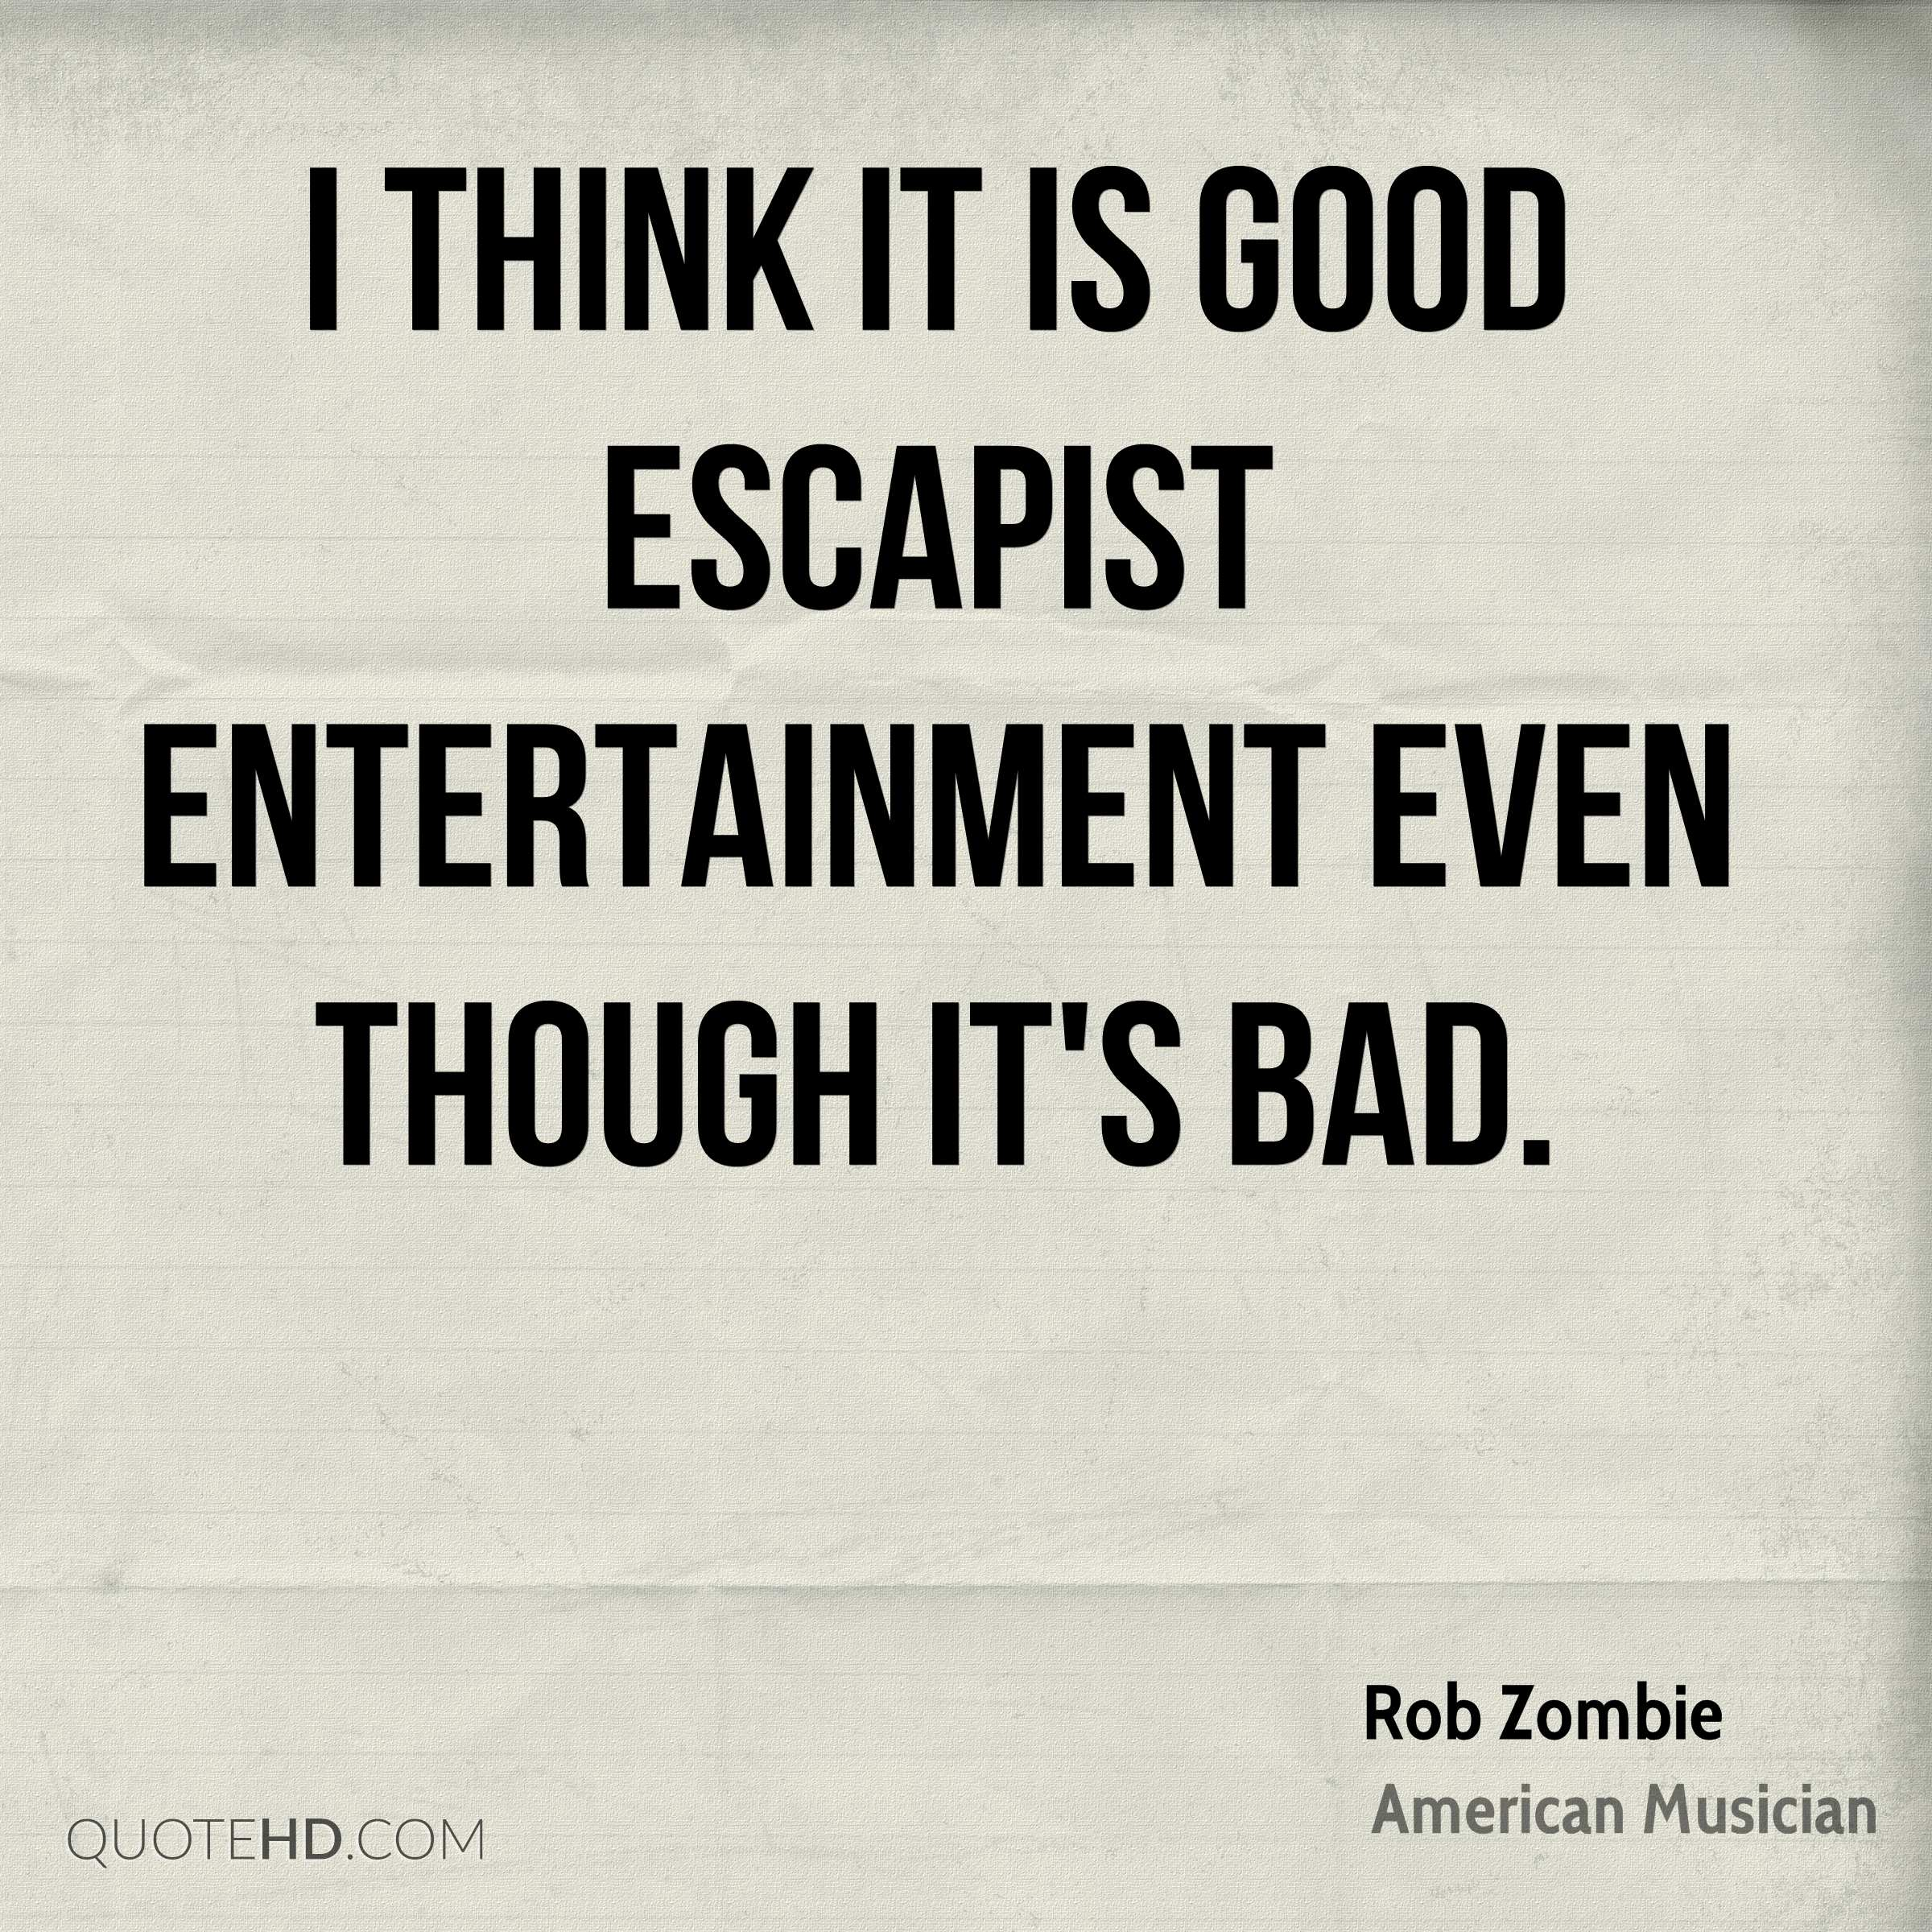 I think it is good escapist entertainment even though it's bad.